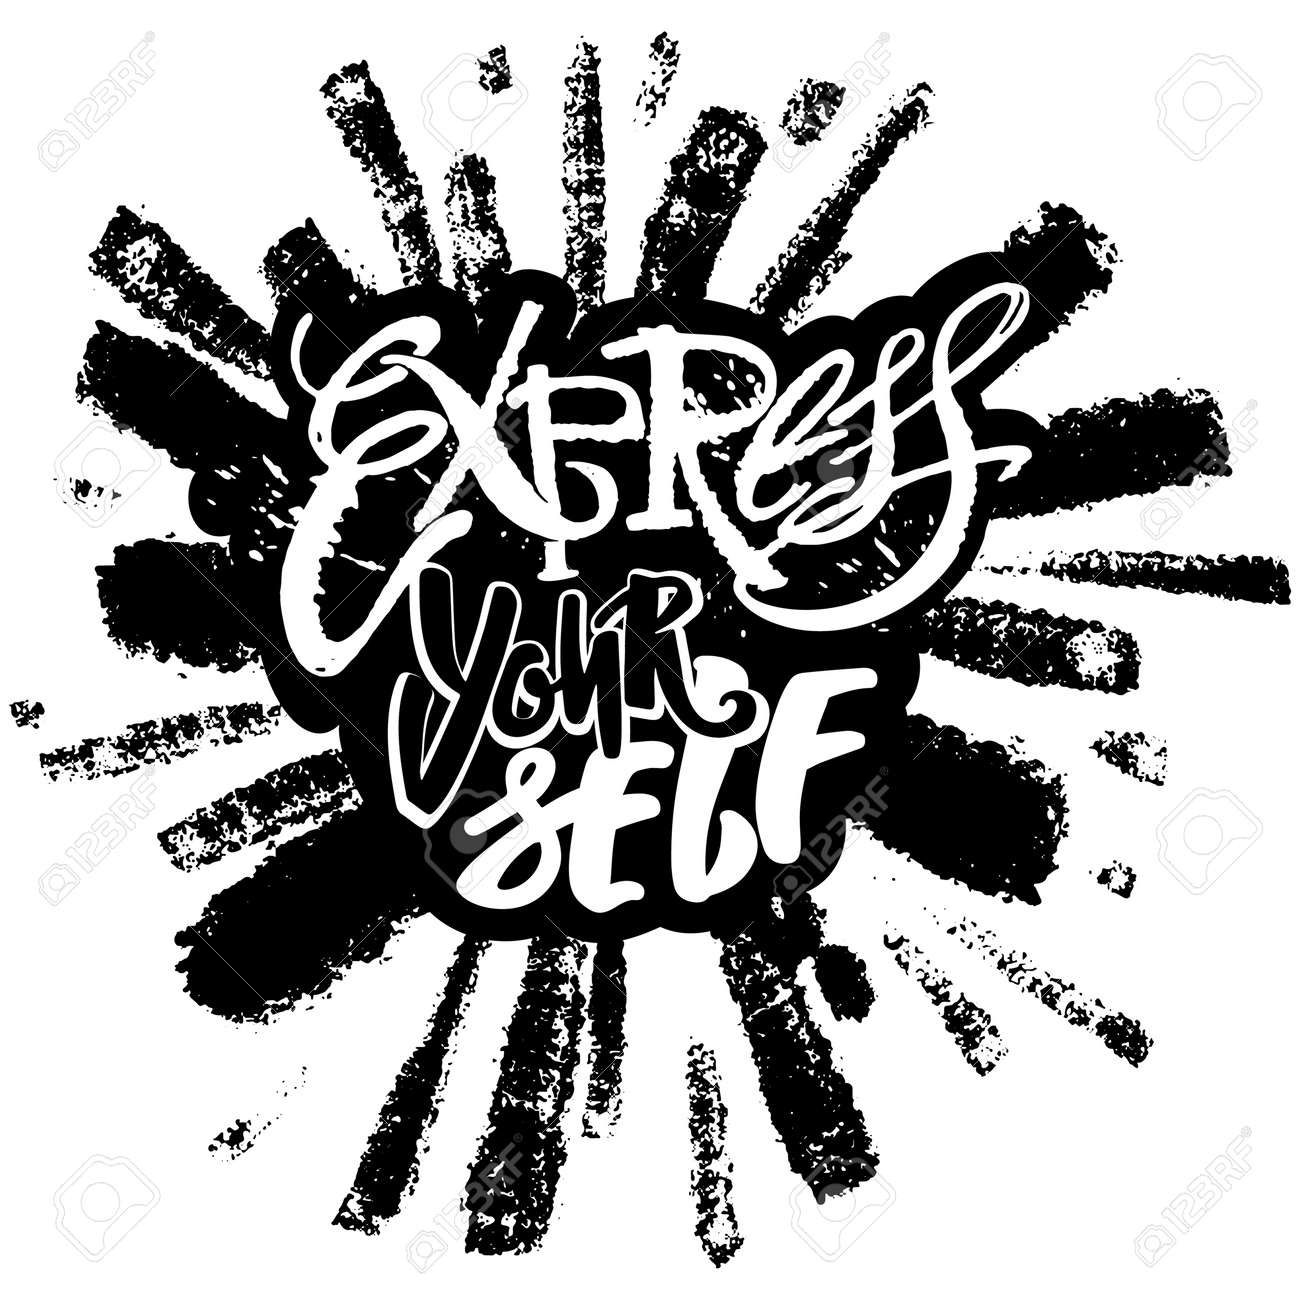 Express Yourselflieve And Do Create Art Motivatorhand Lettering